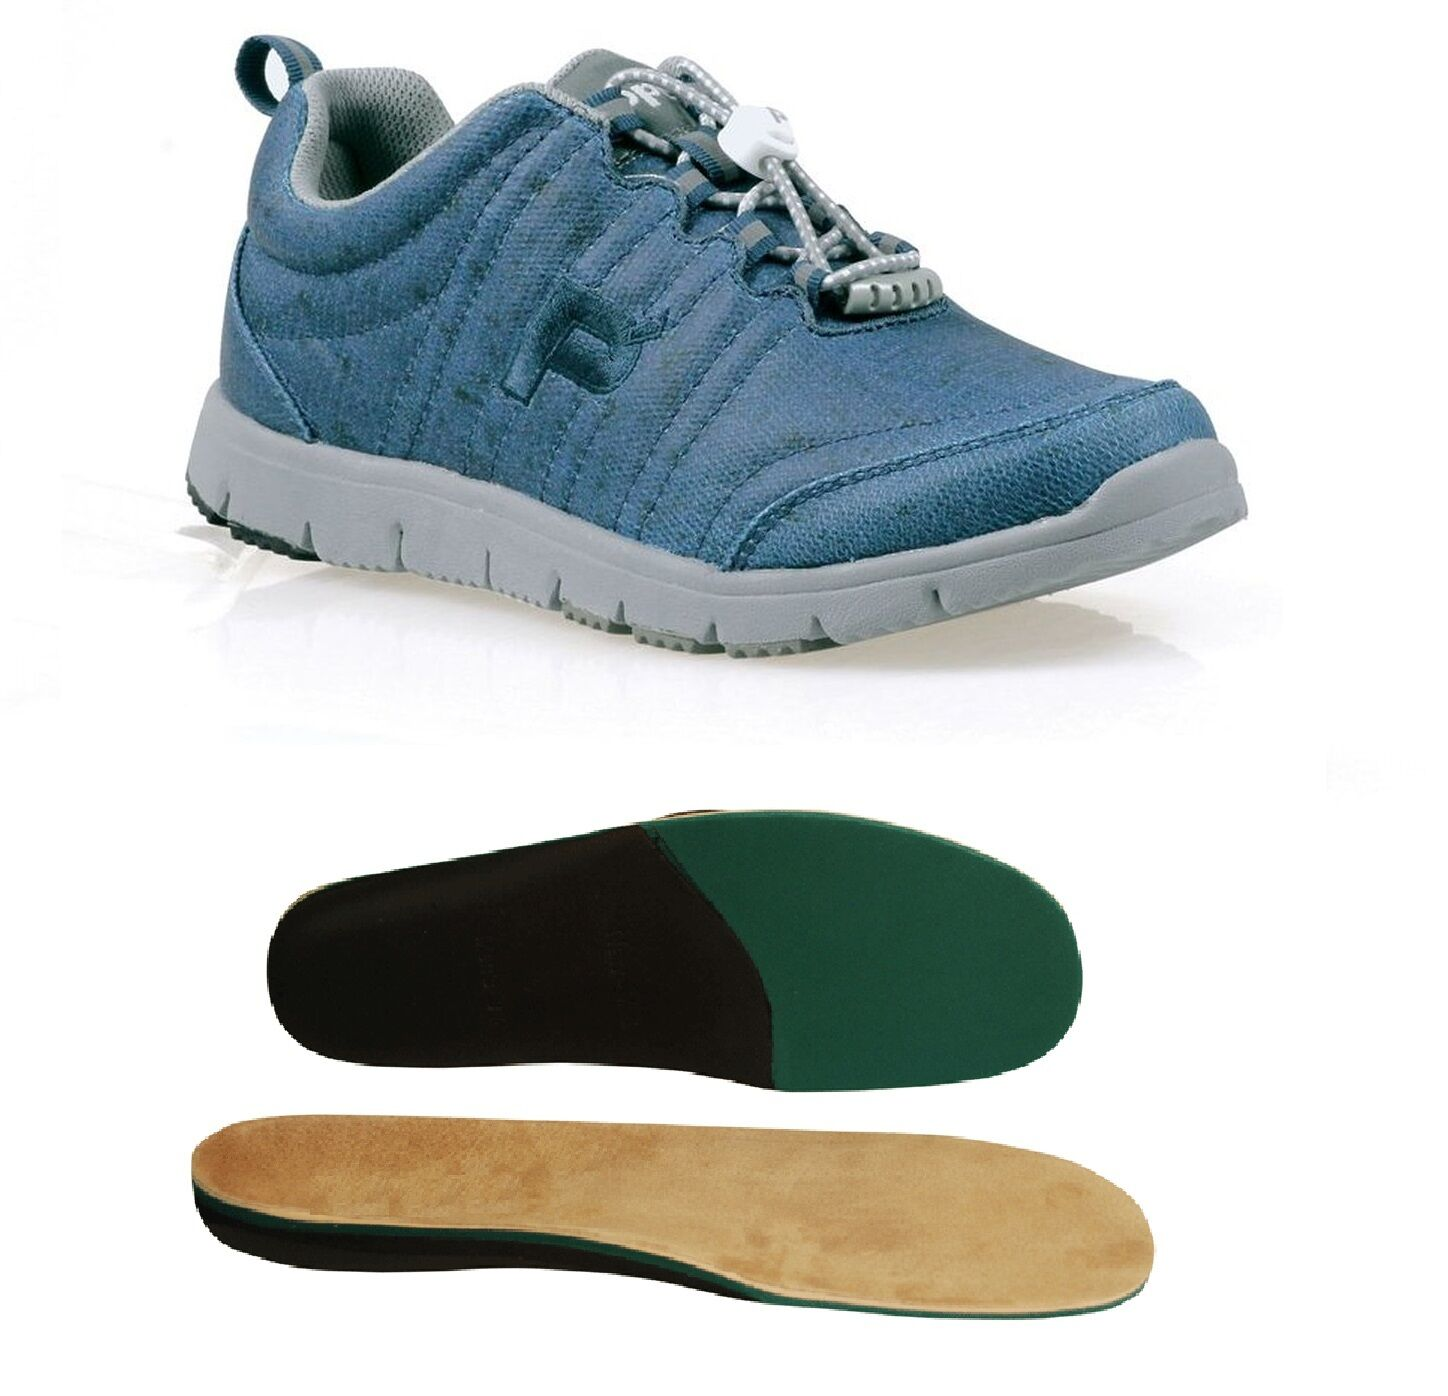 Propet Travel Walker Canvas bleu W3259 with Therapeutic Arch Support Insoles